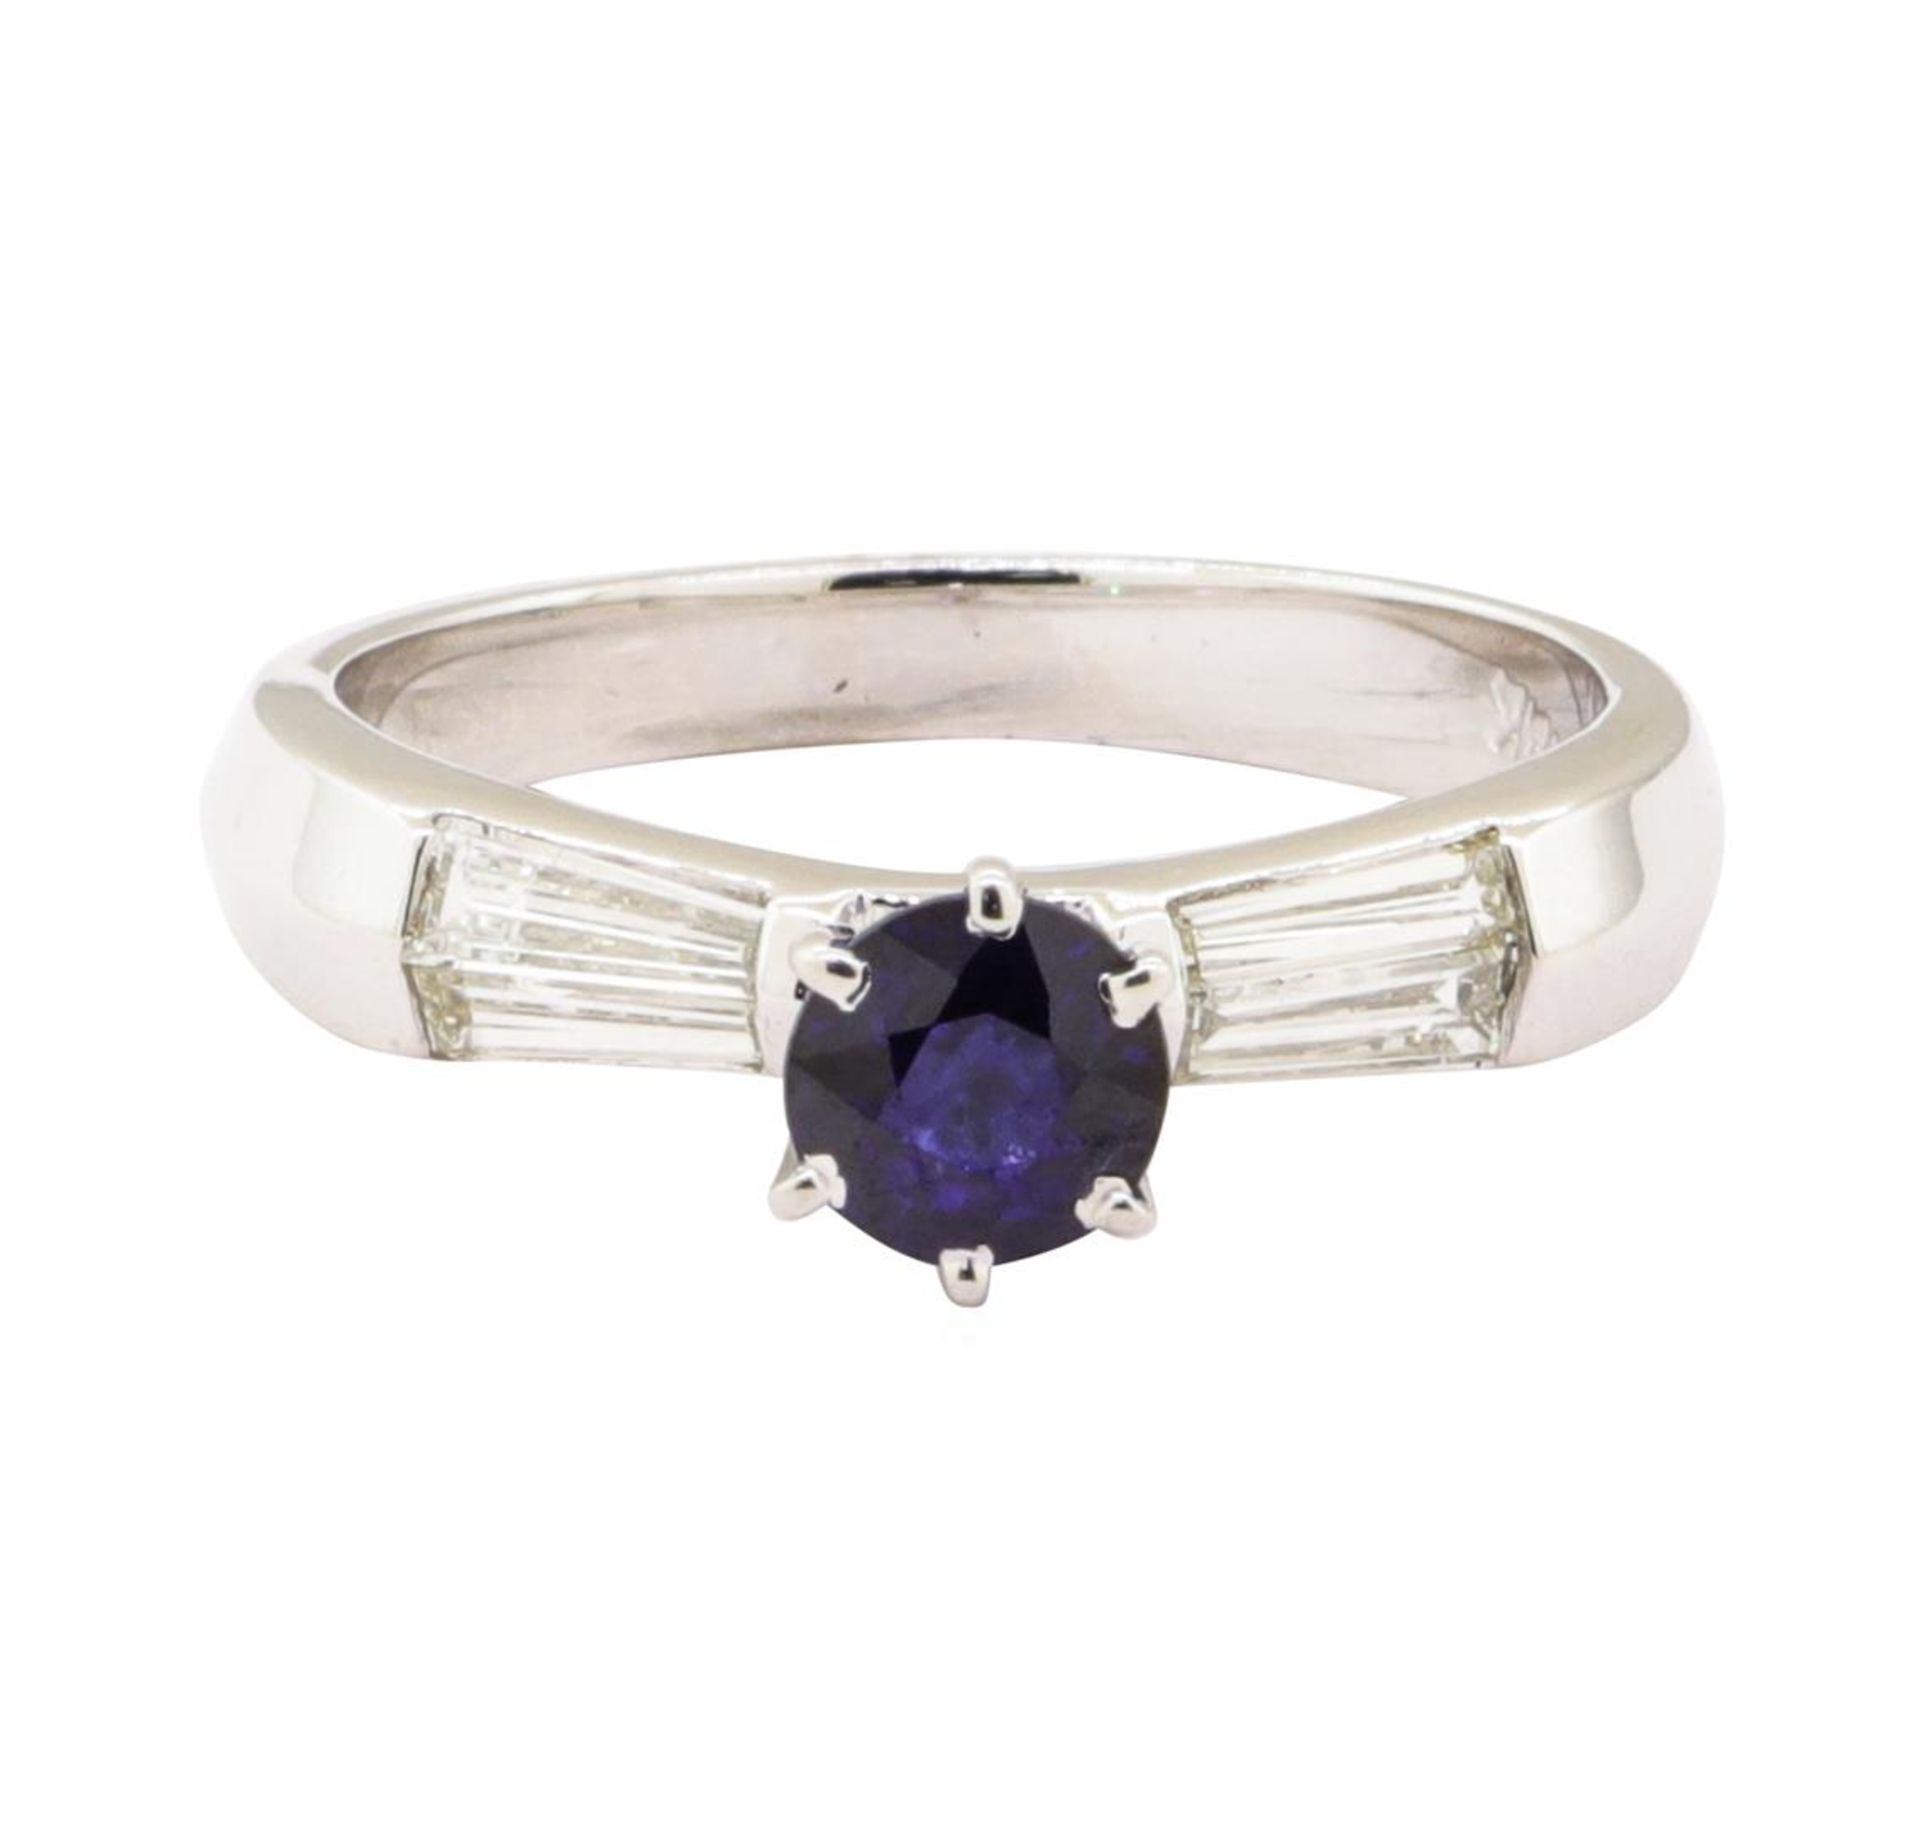 1.15 ctw Blue Sapphire And Diamond Ring - 18KT White Gold - Image 2 of 5